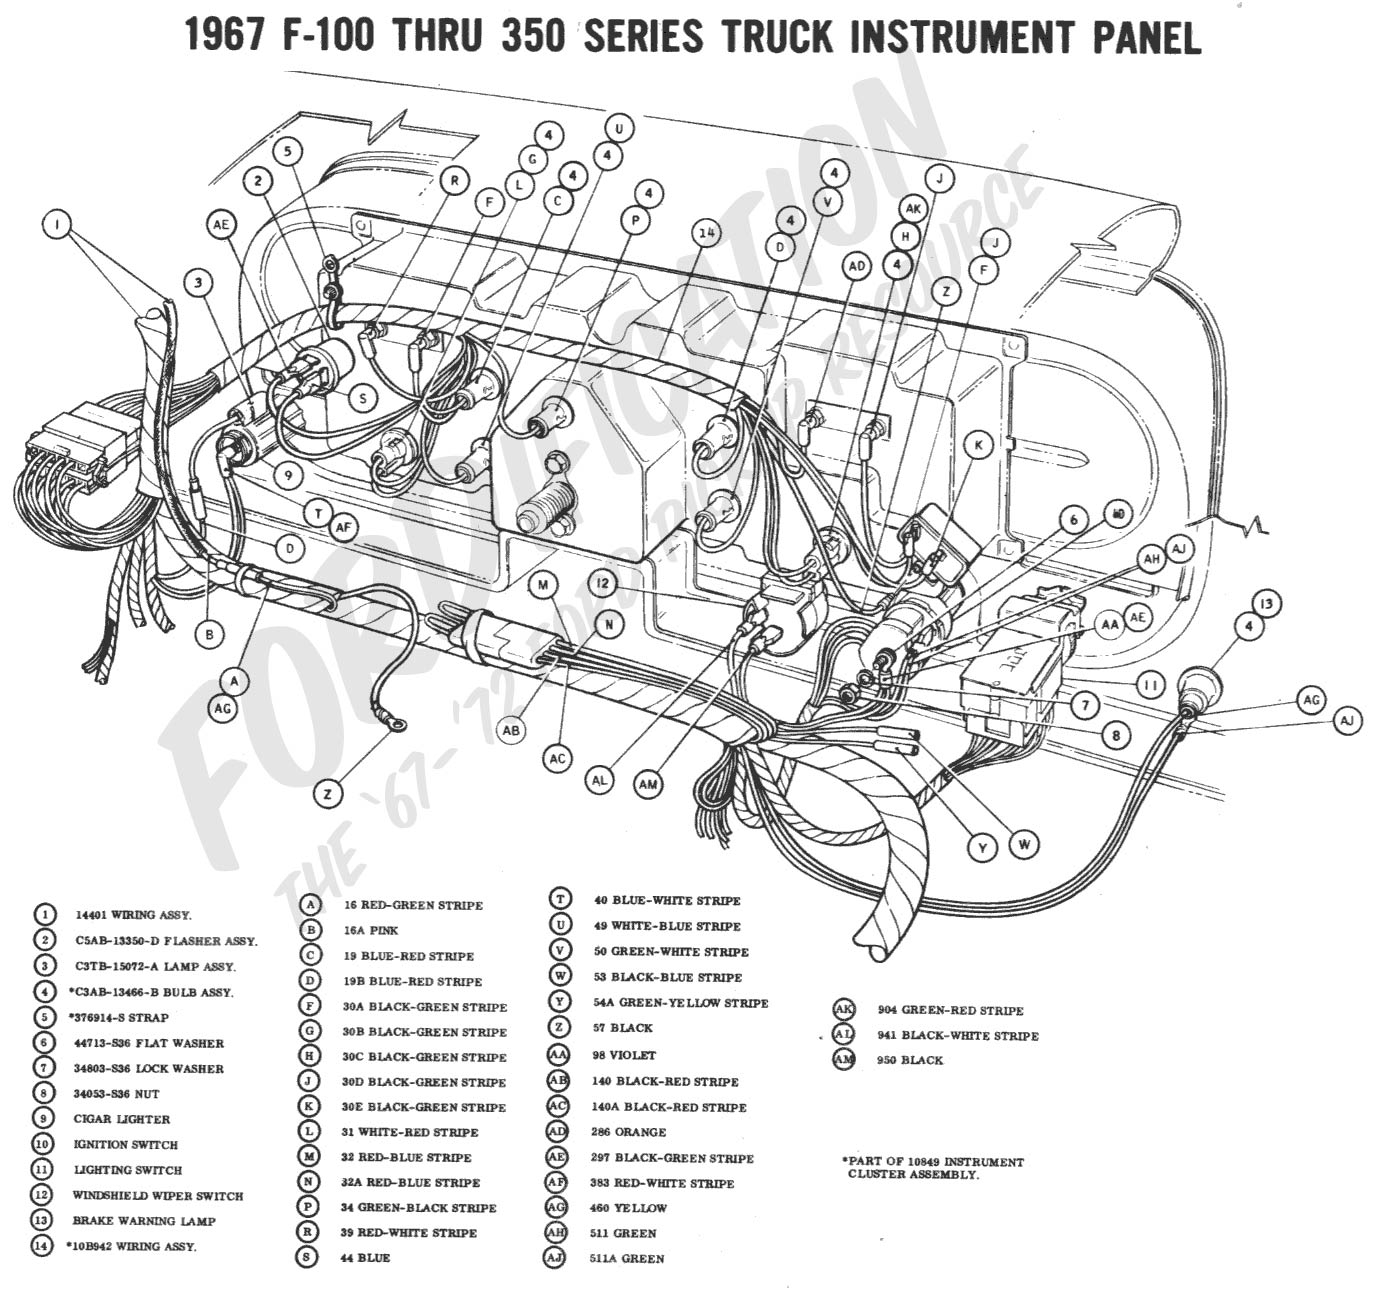 wiring 1967instrumentpanel ford truck technical drawings and schematics section h wiring Ford 4600 Wiring Schematic at n-0.co